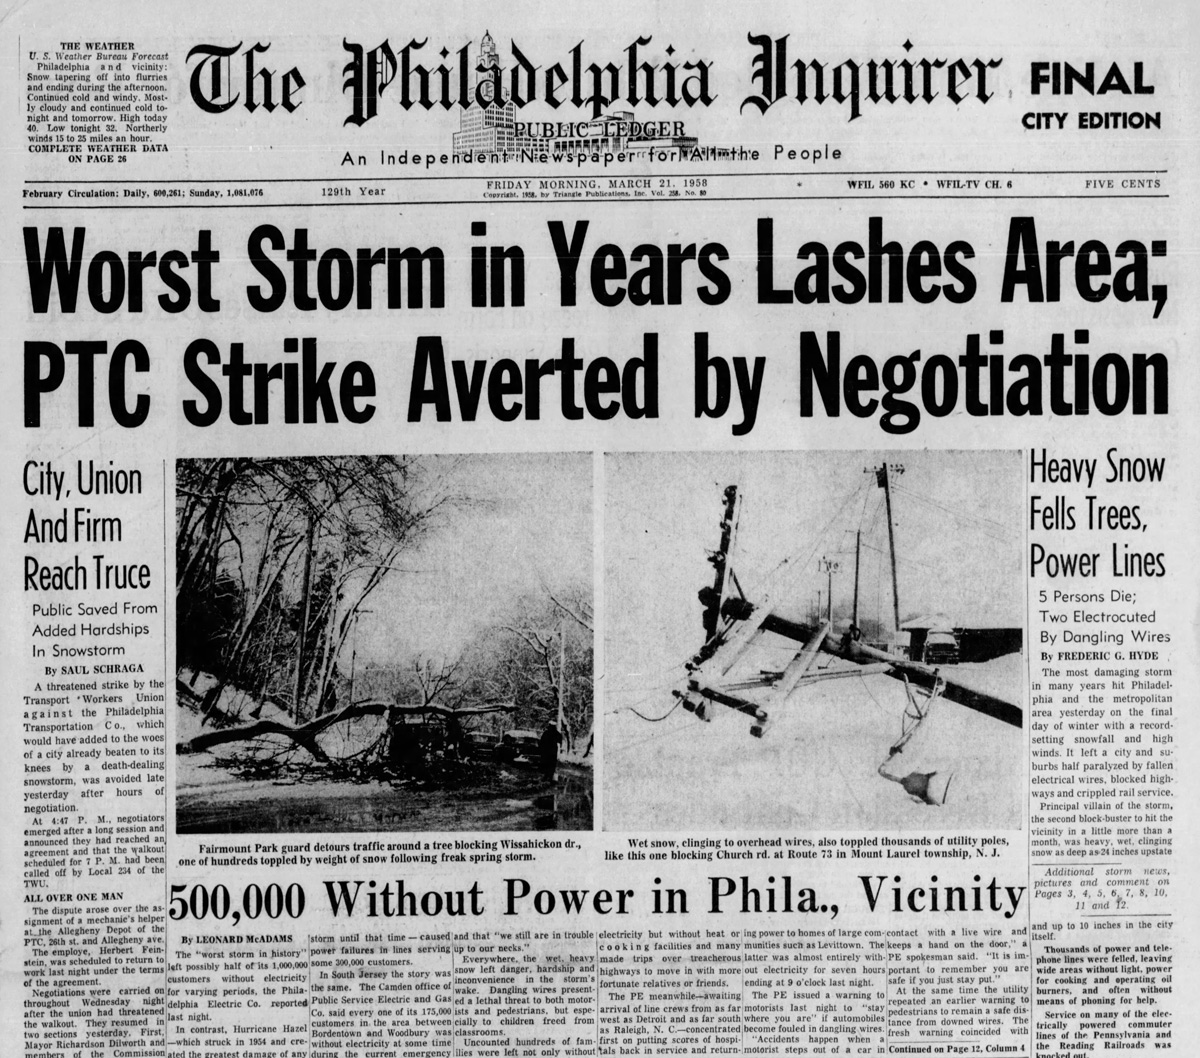 """The """"Philly Inquirer"""" headline on March 21, 1958 regarding the storm which became known as the """"Equinox Storm"""""""